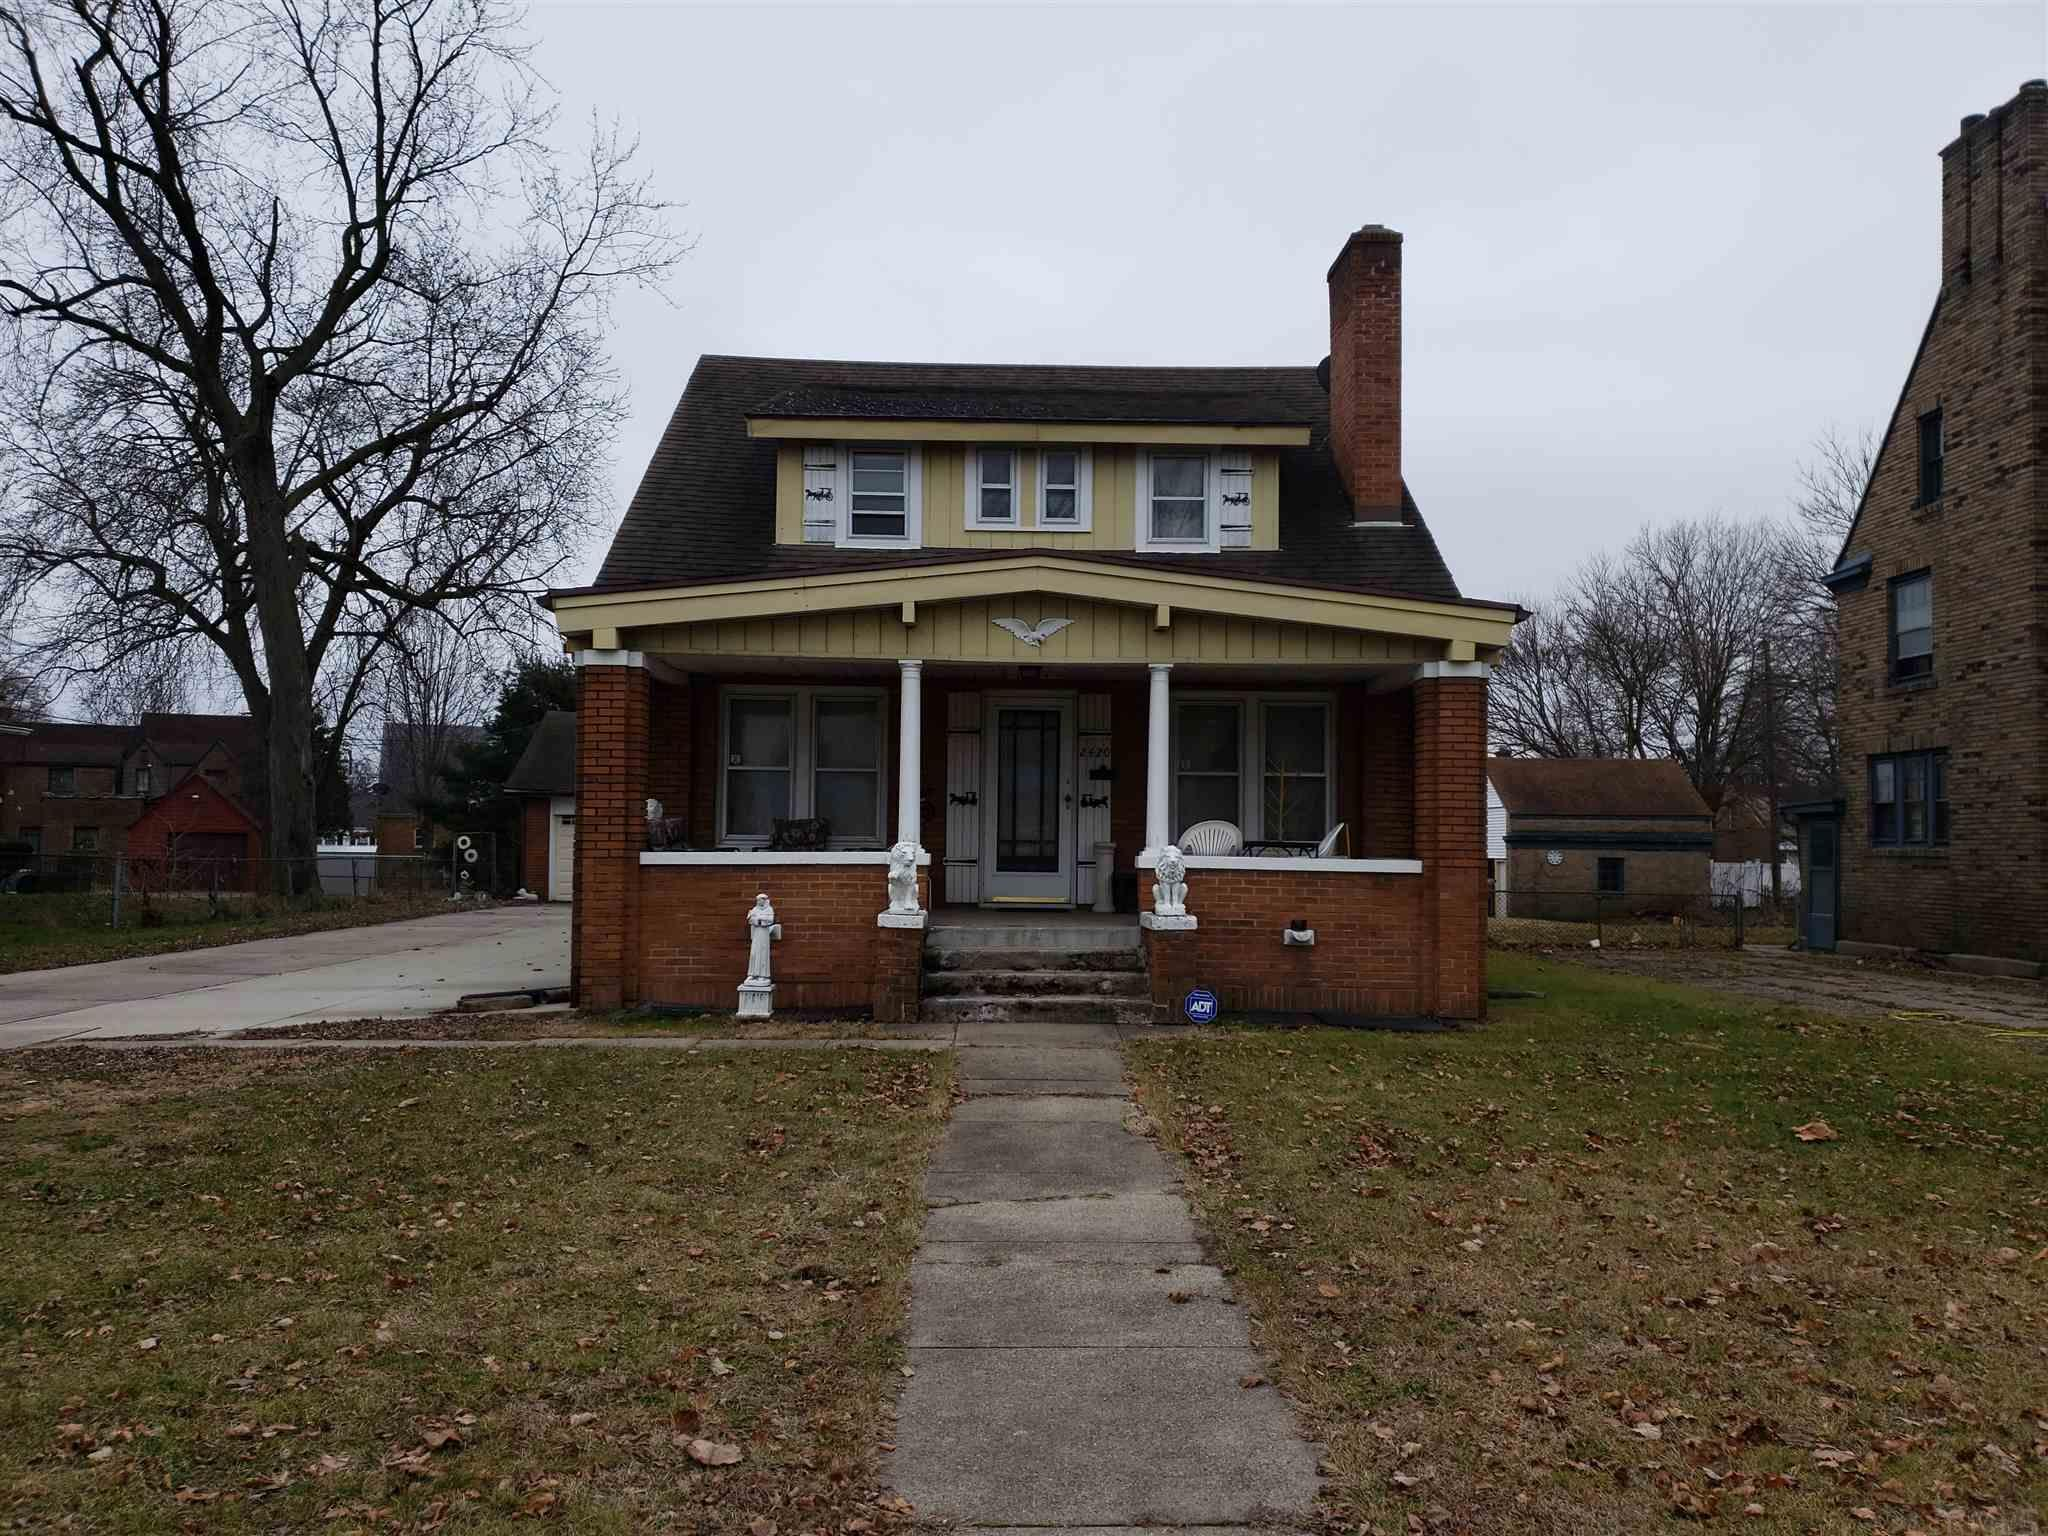 2420 Lincolnway West South Bend, IN 46628